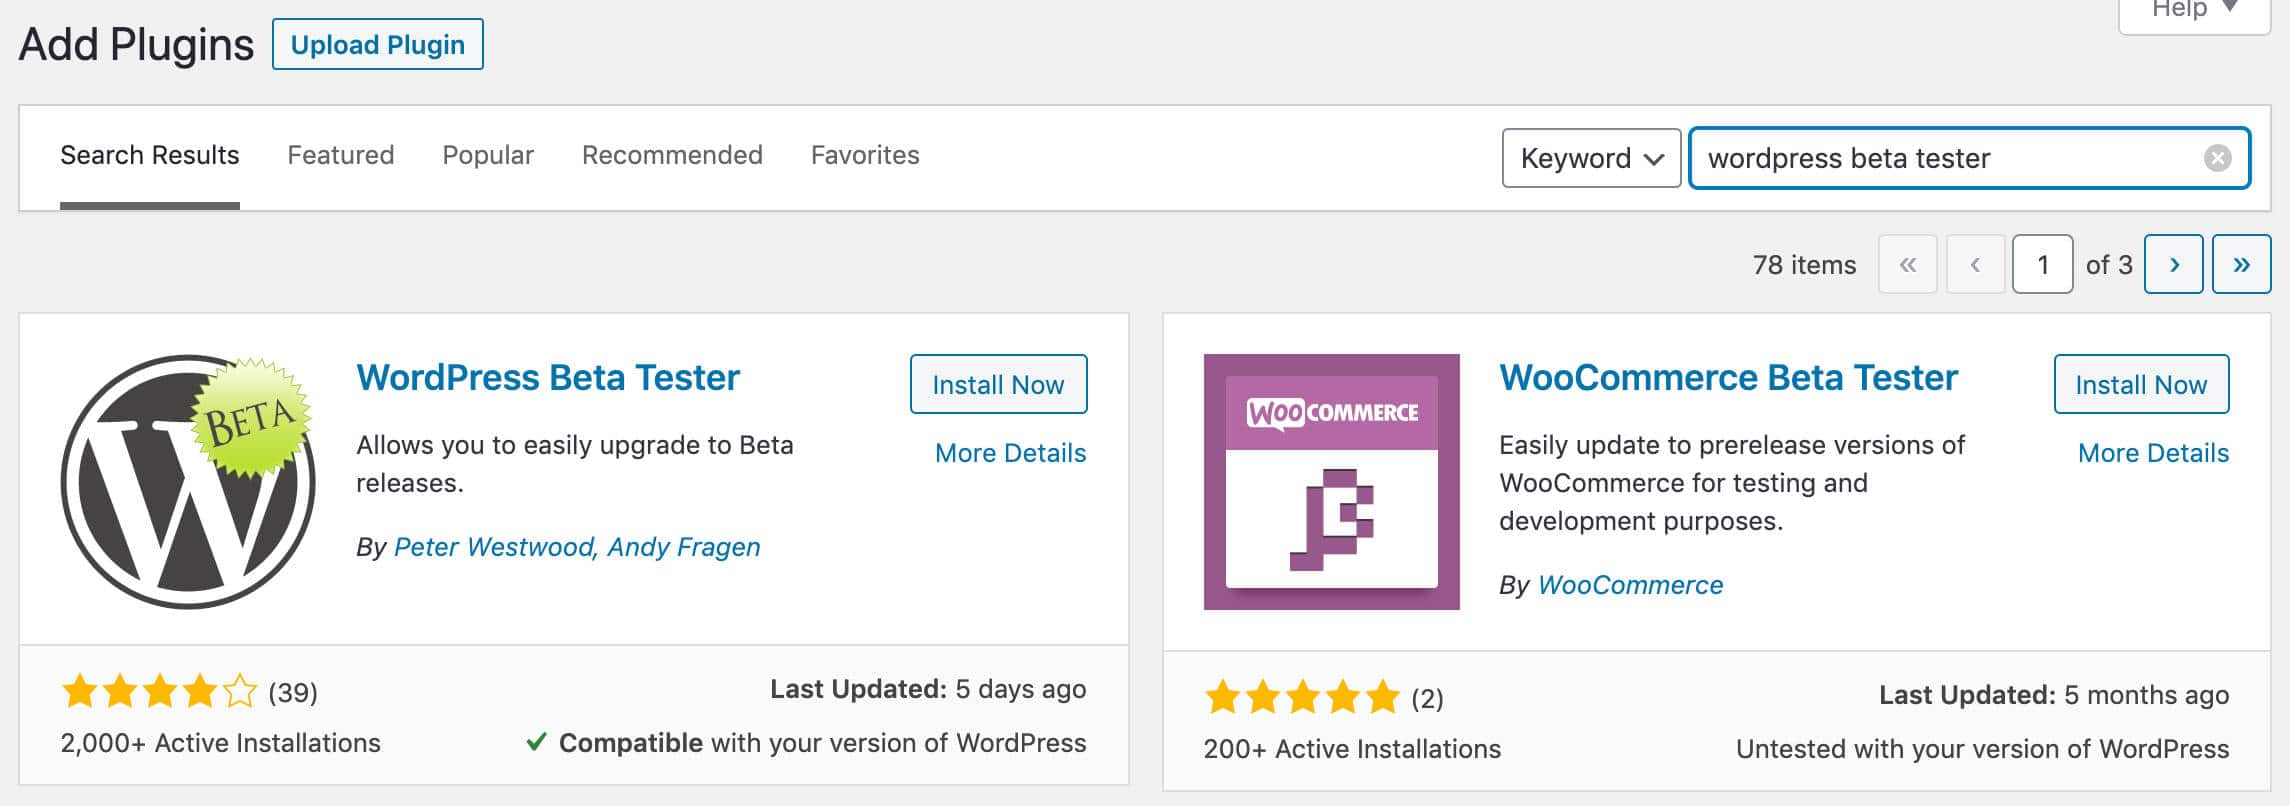 WordPress Beta Tester